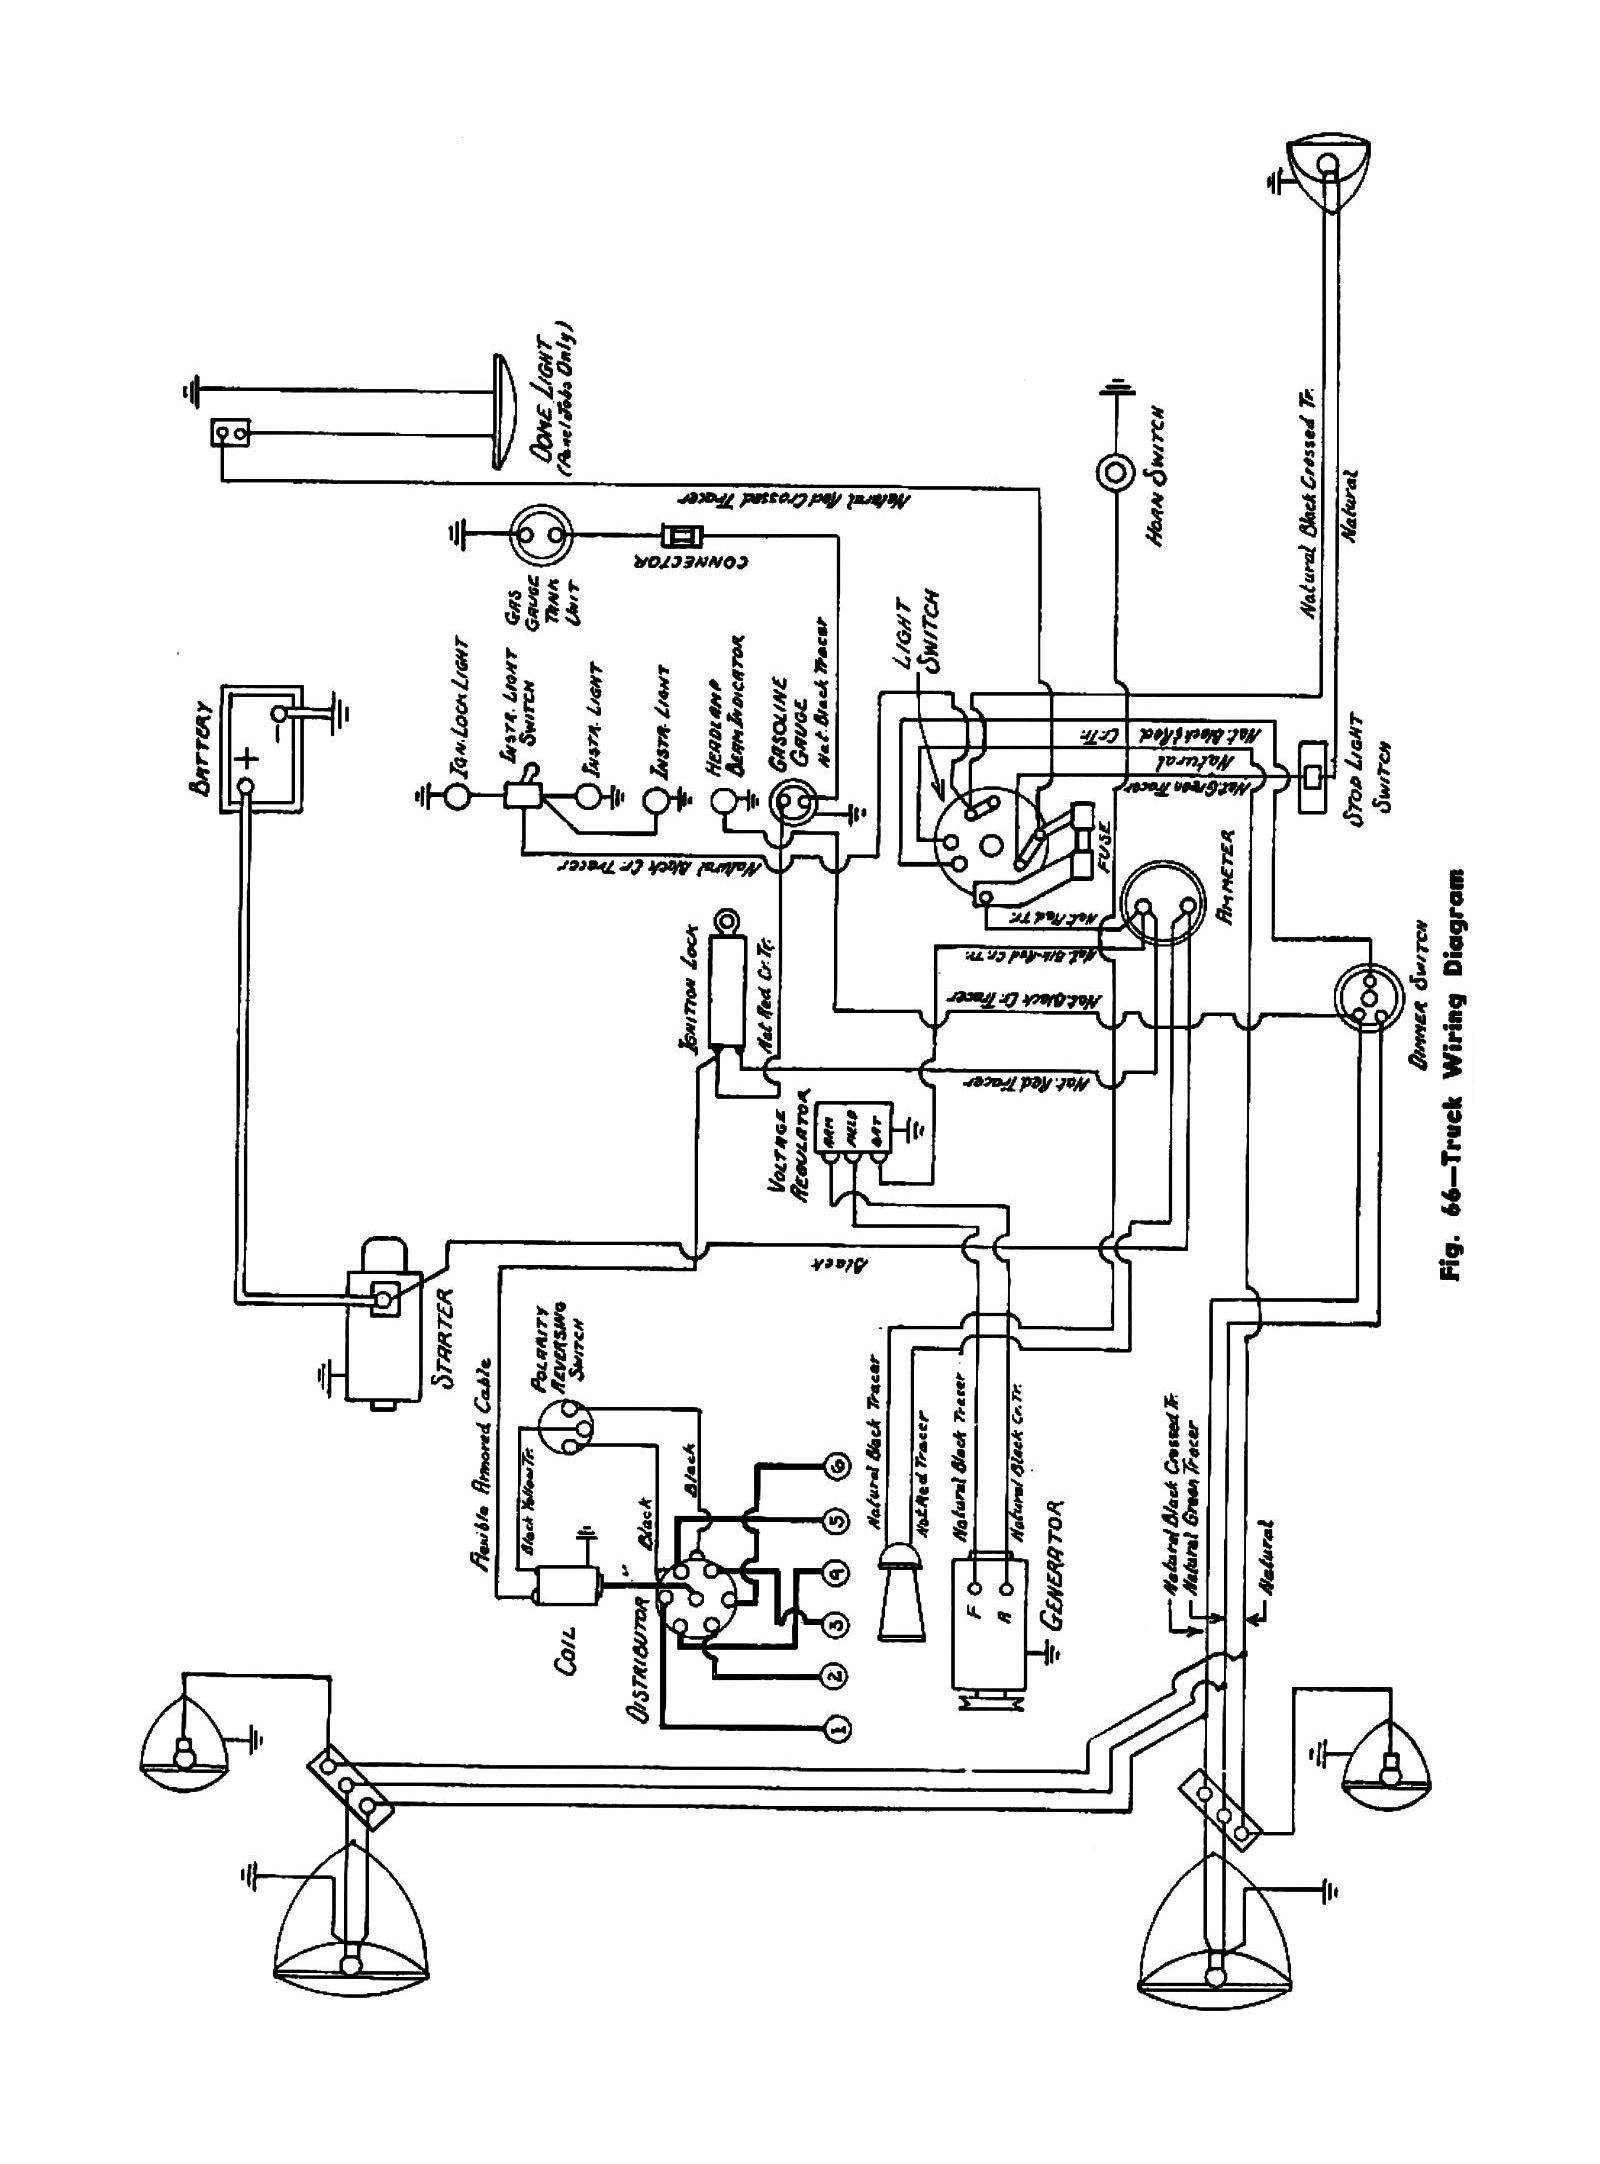 47 ford sedan wiring diagram wiring diagram 1984 gmc truck wiring diagram 47 ford sedan wiring diagram wiring diagramwrg 4500] ford flathead 12 volt wiringchevy wiring diagrams